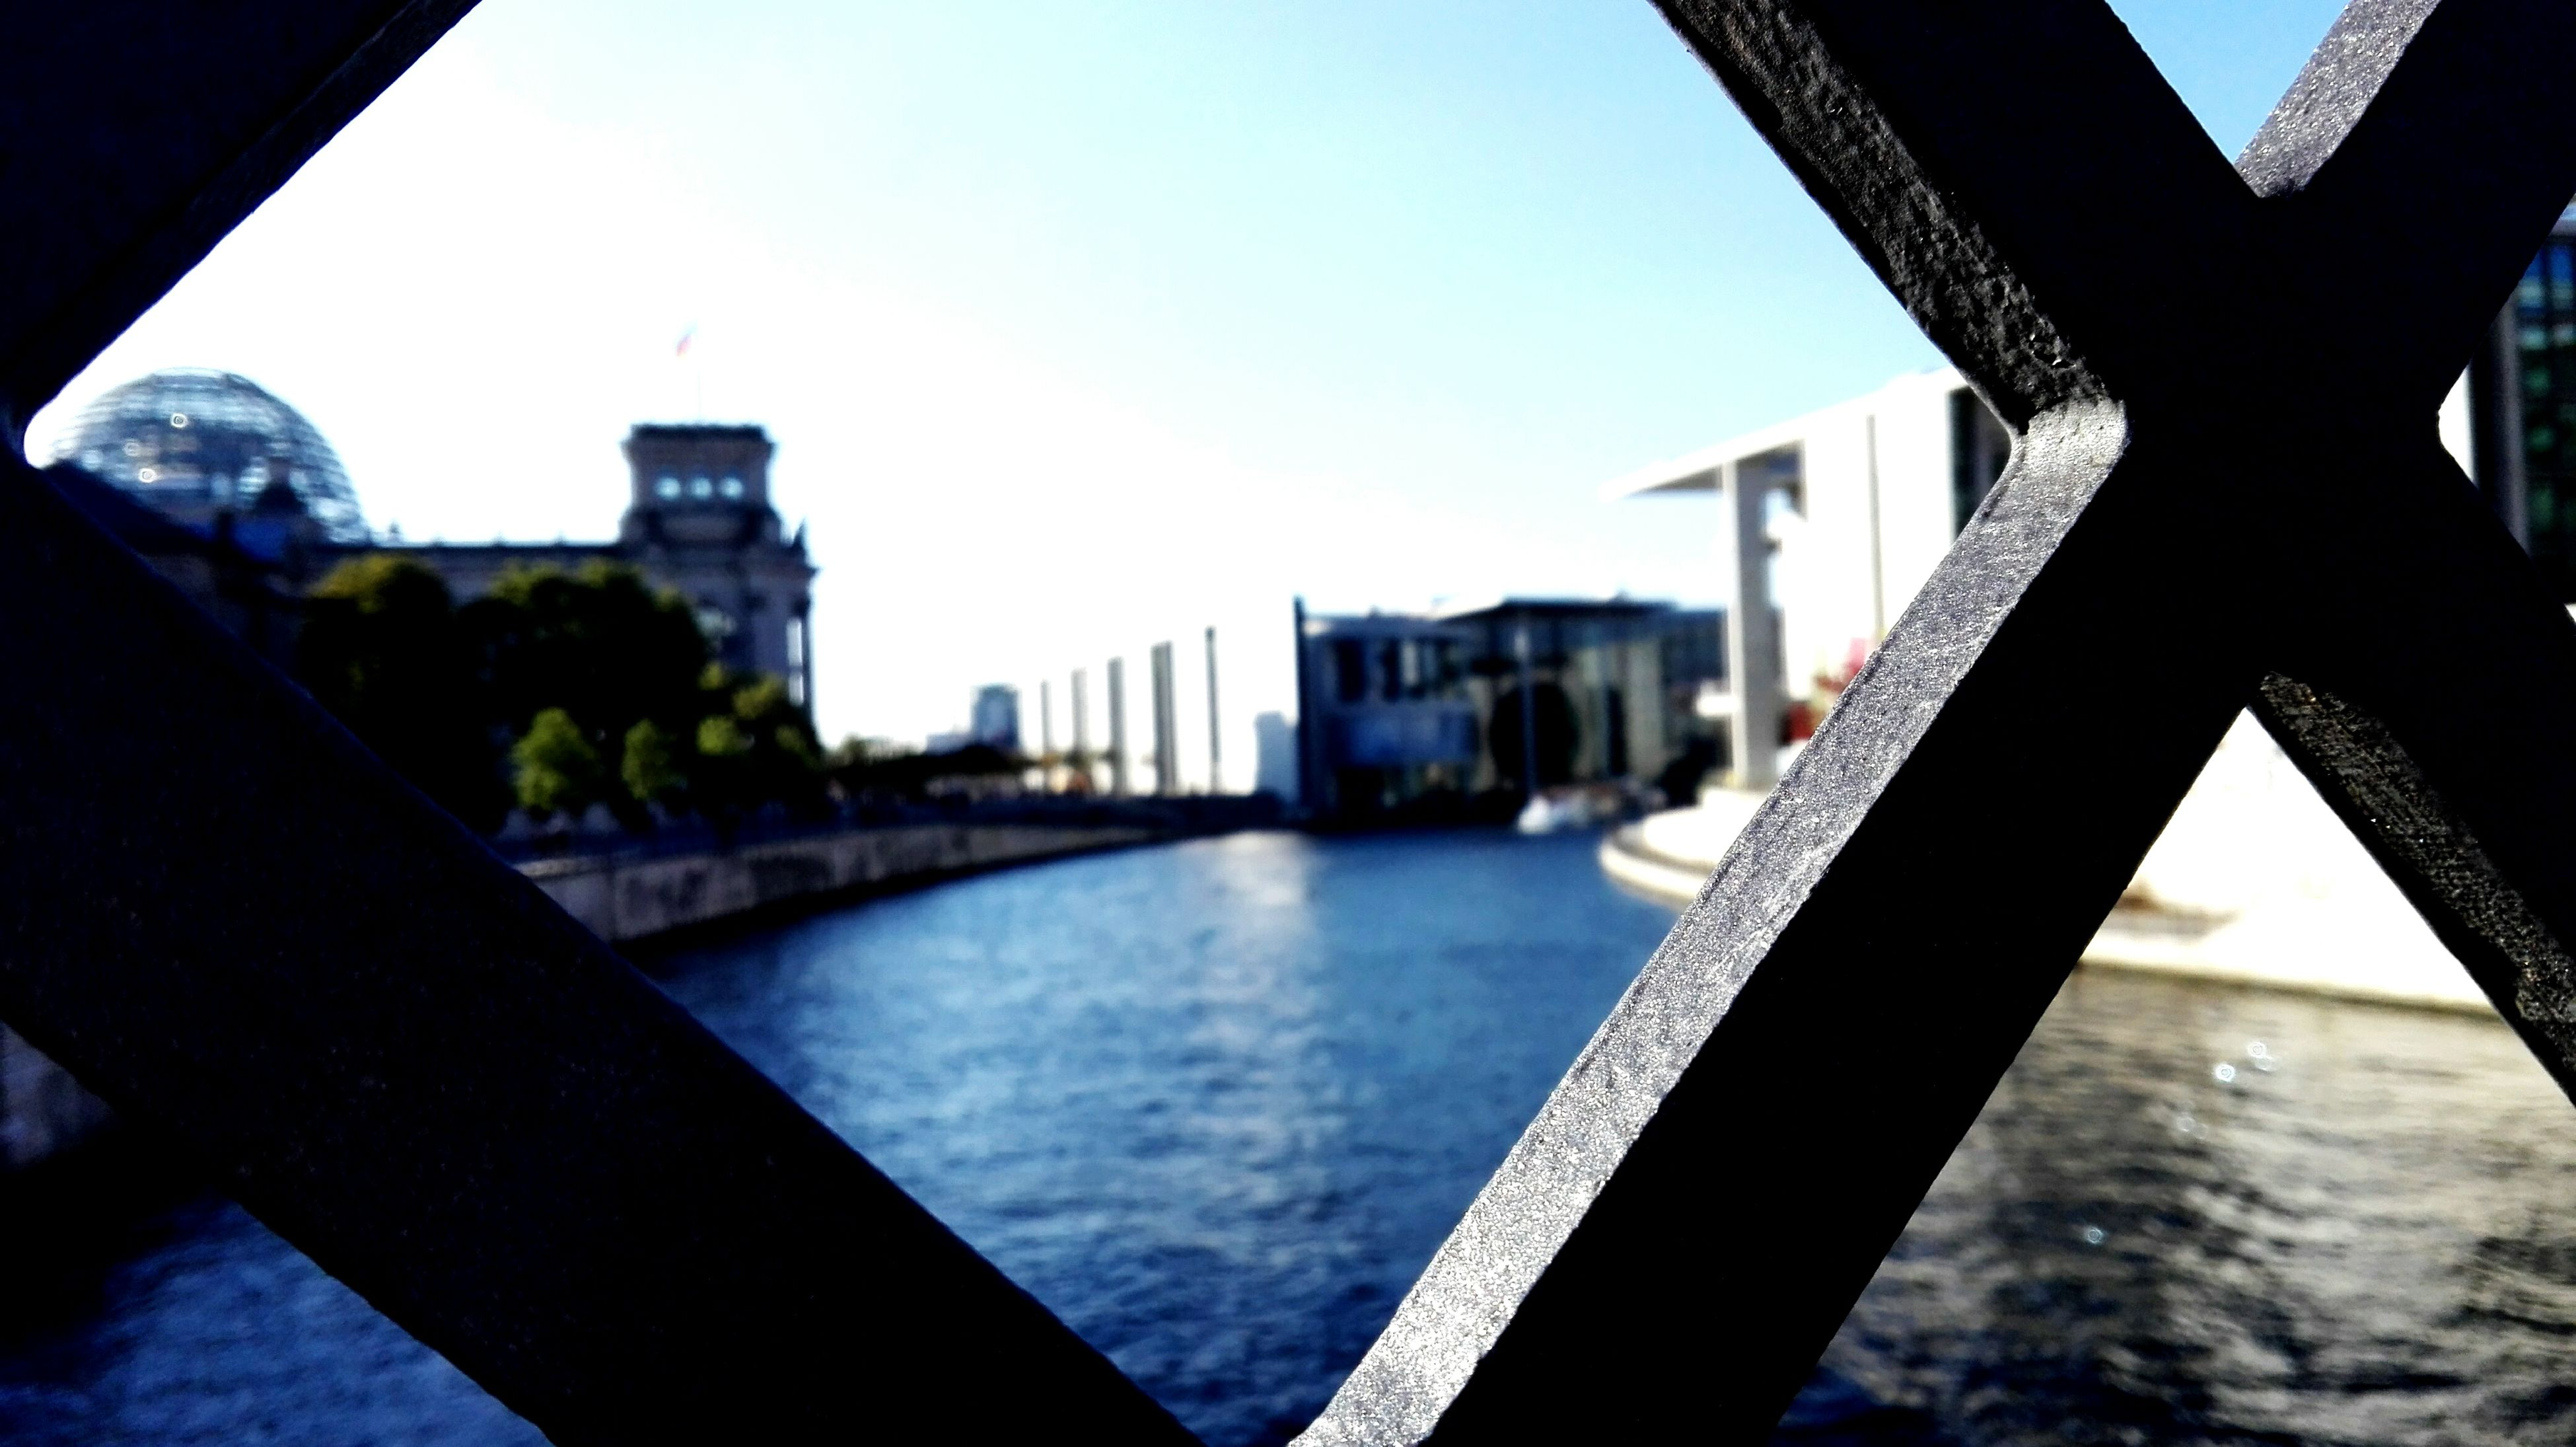 architecture, built structure, water, building exterior, clear sky, river, city, bridge - man made structure, connection, metal, cityscape, sky, bridge, railing, close-up, blue, day, reflection, no people, indoors